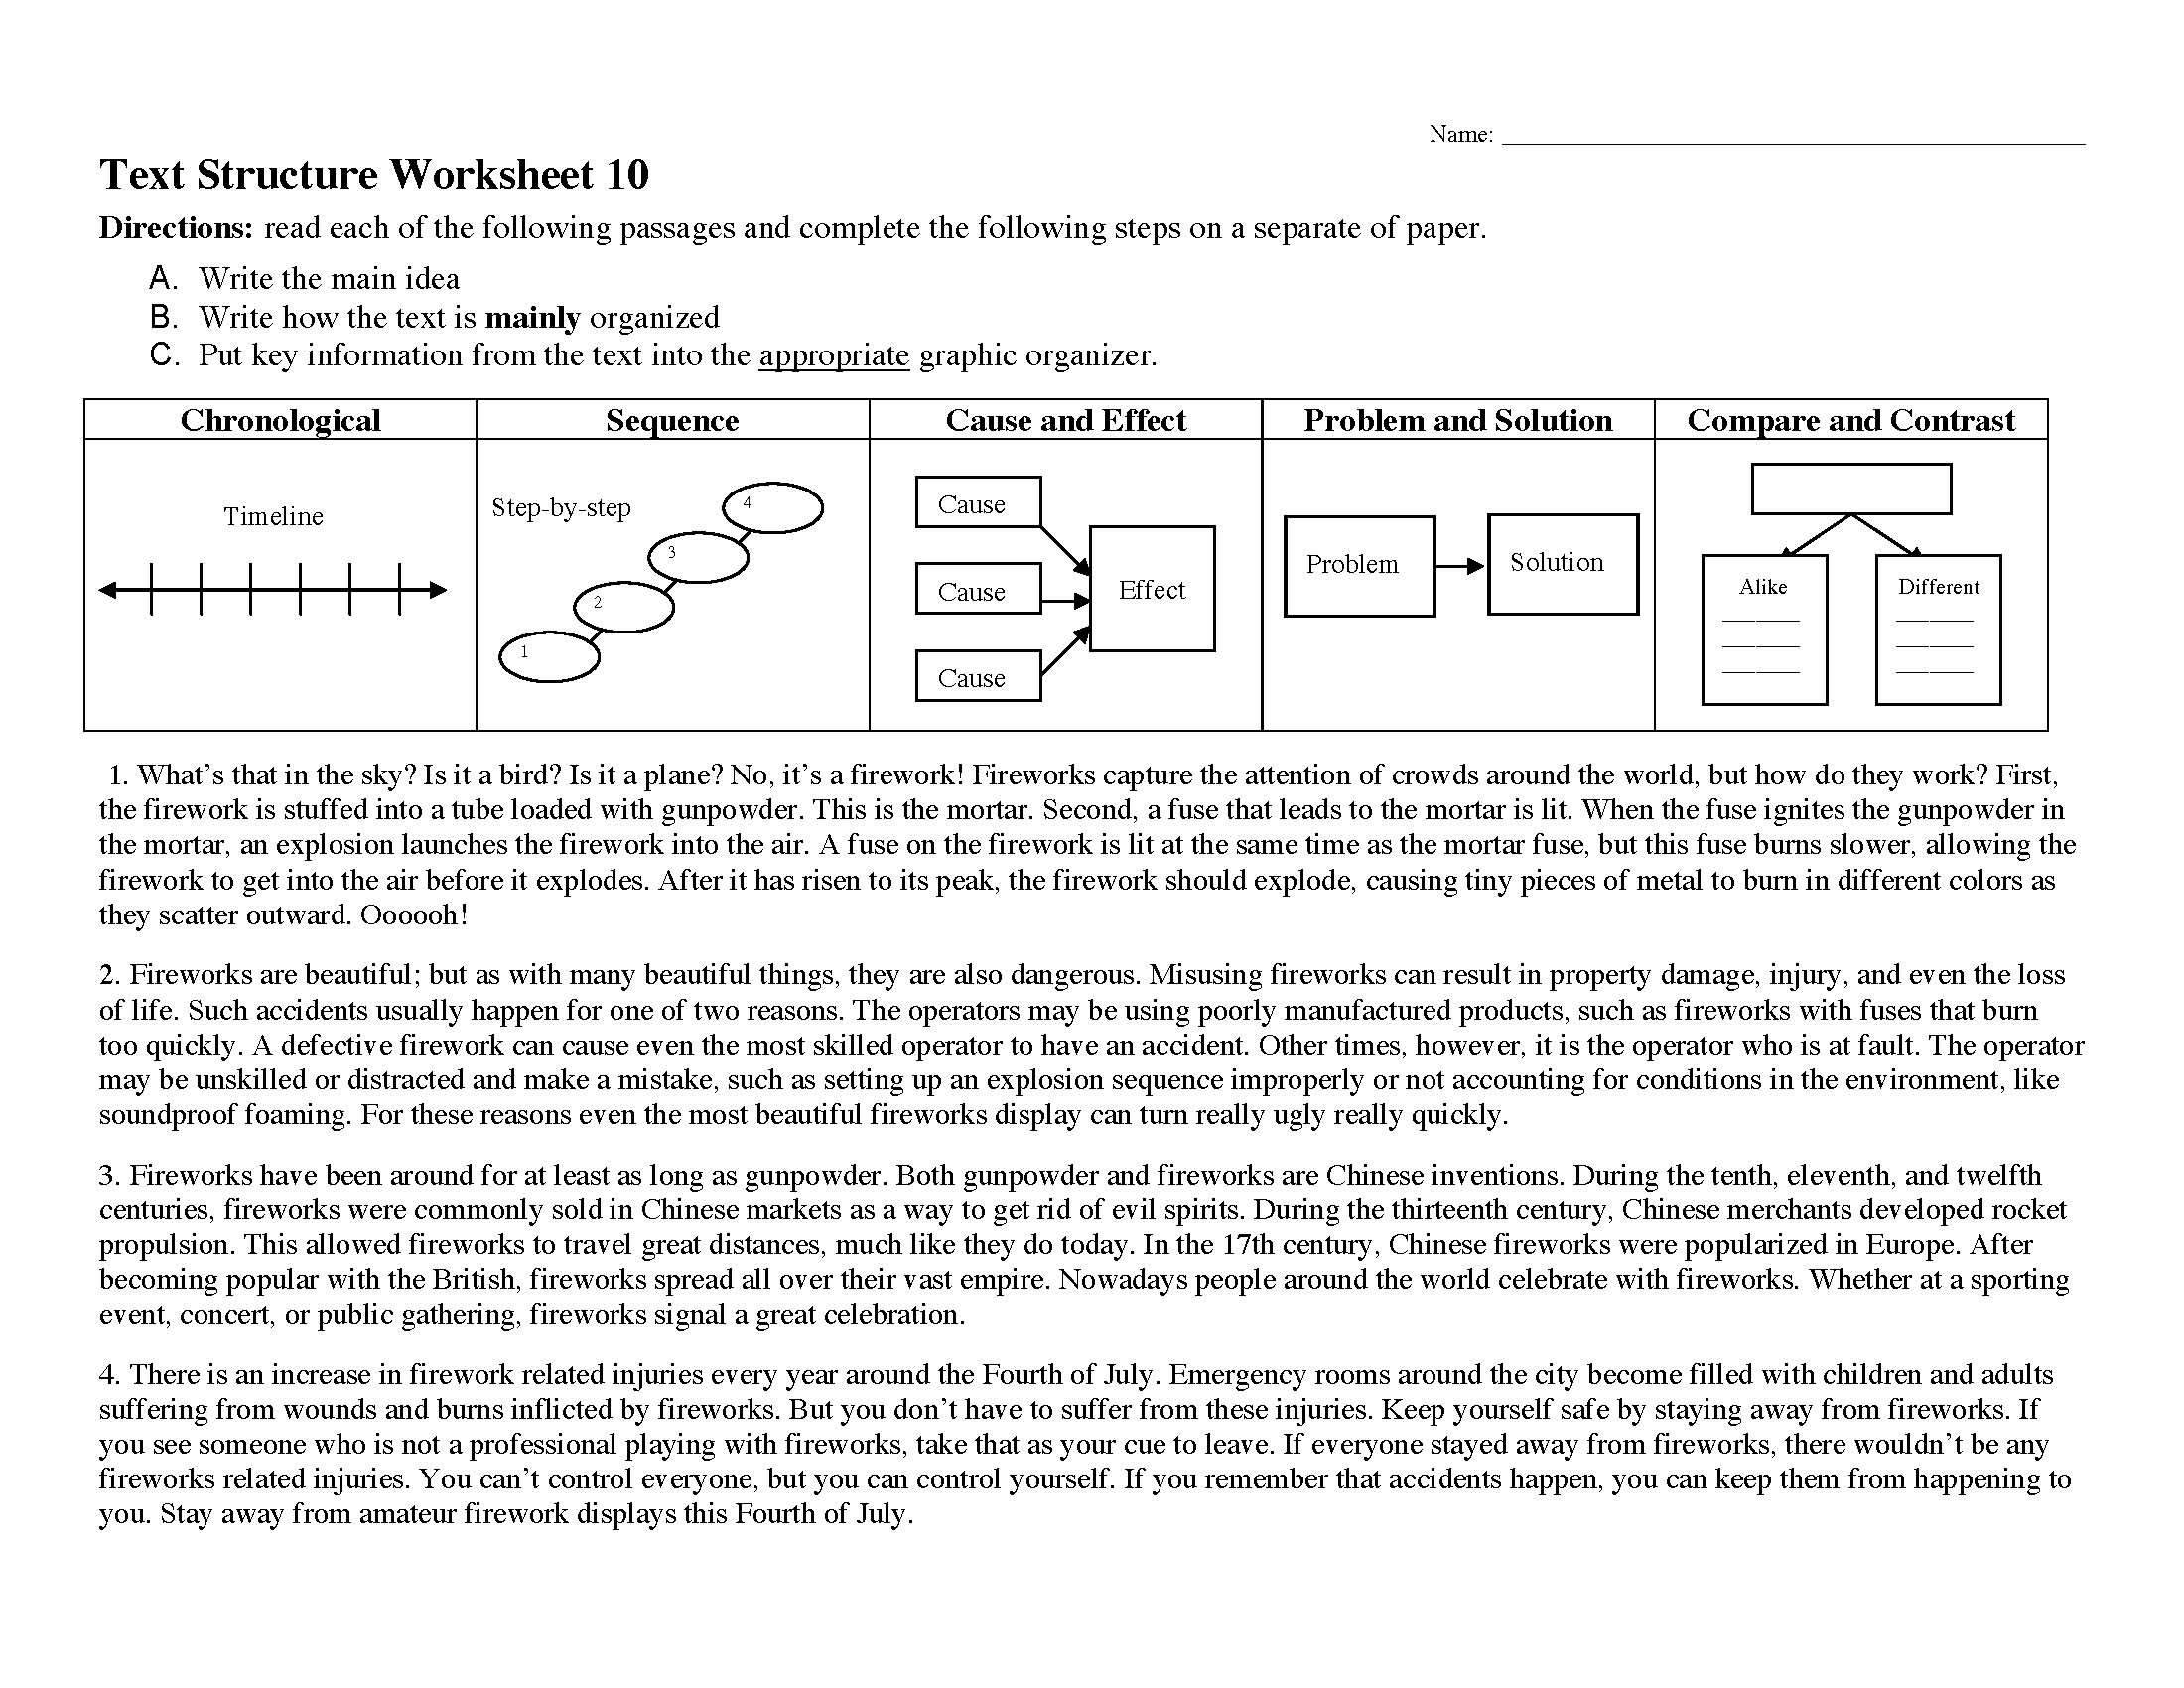 Text Structure Worksheet 10  Preview With Text Structure Worksheet Pdf